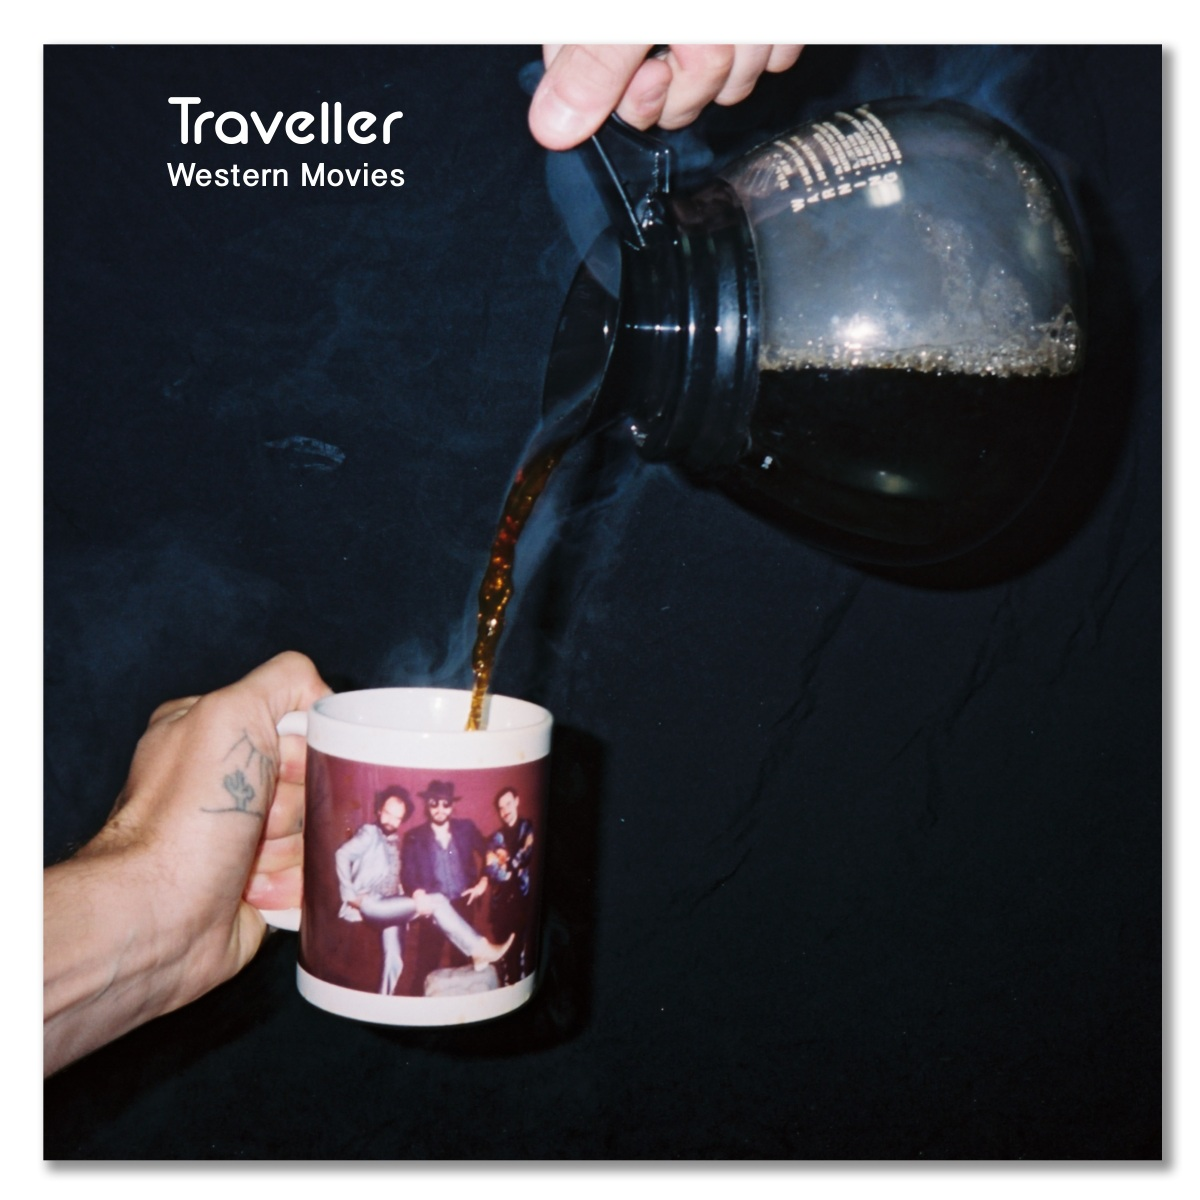 ALBUM REVIEW: Traveller –Western Movies